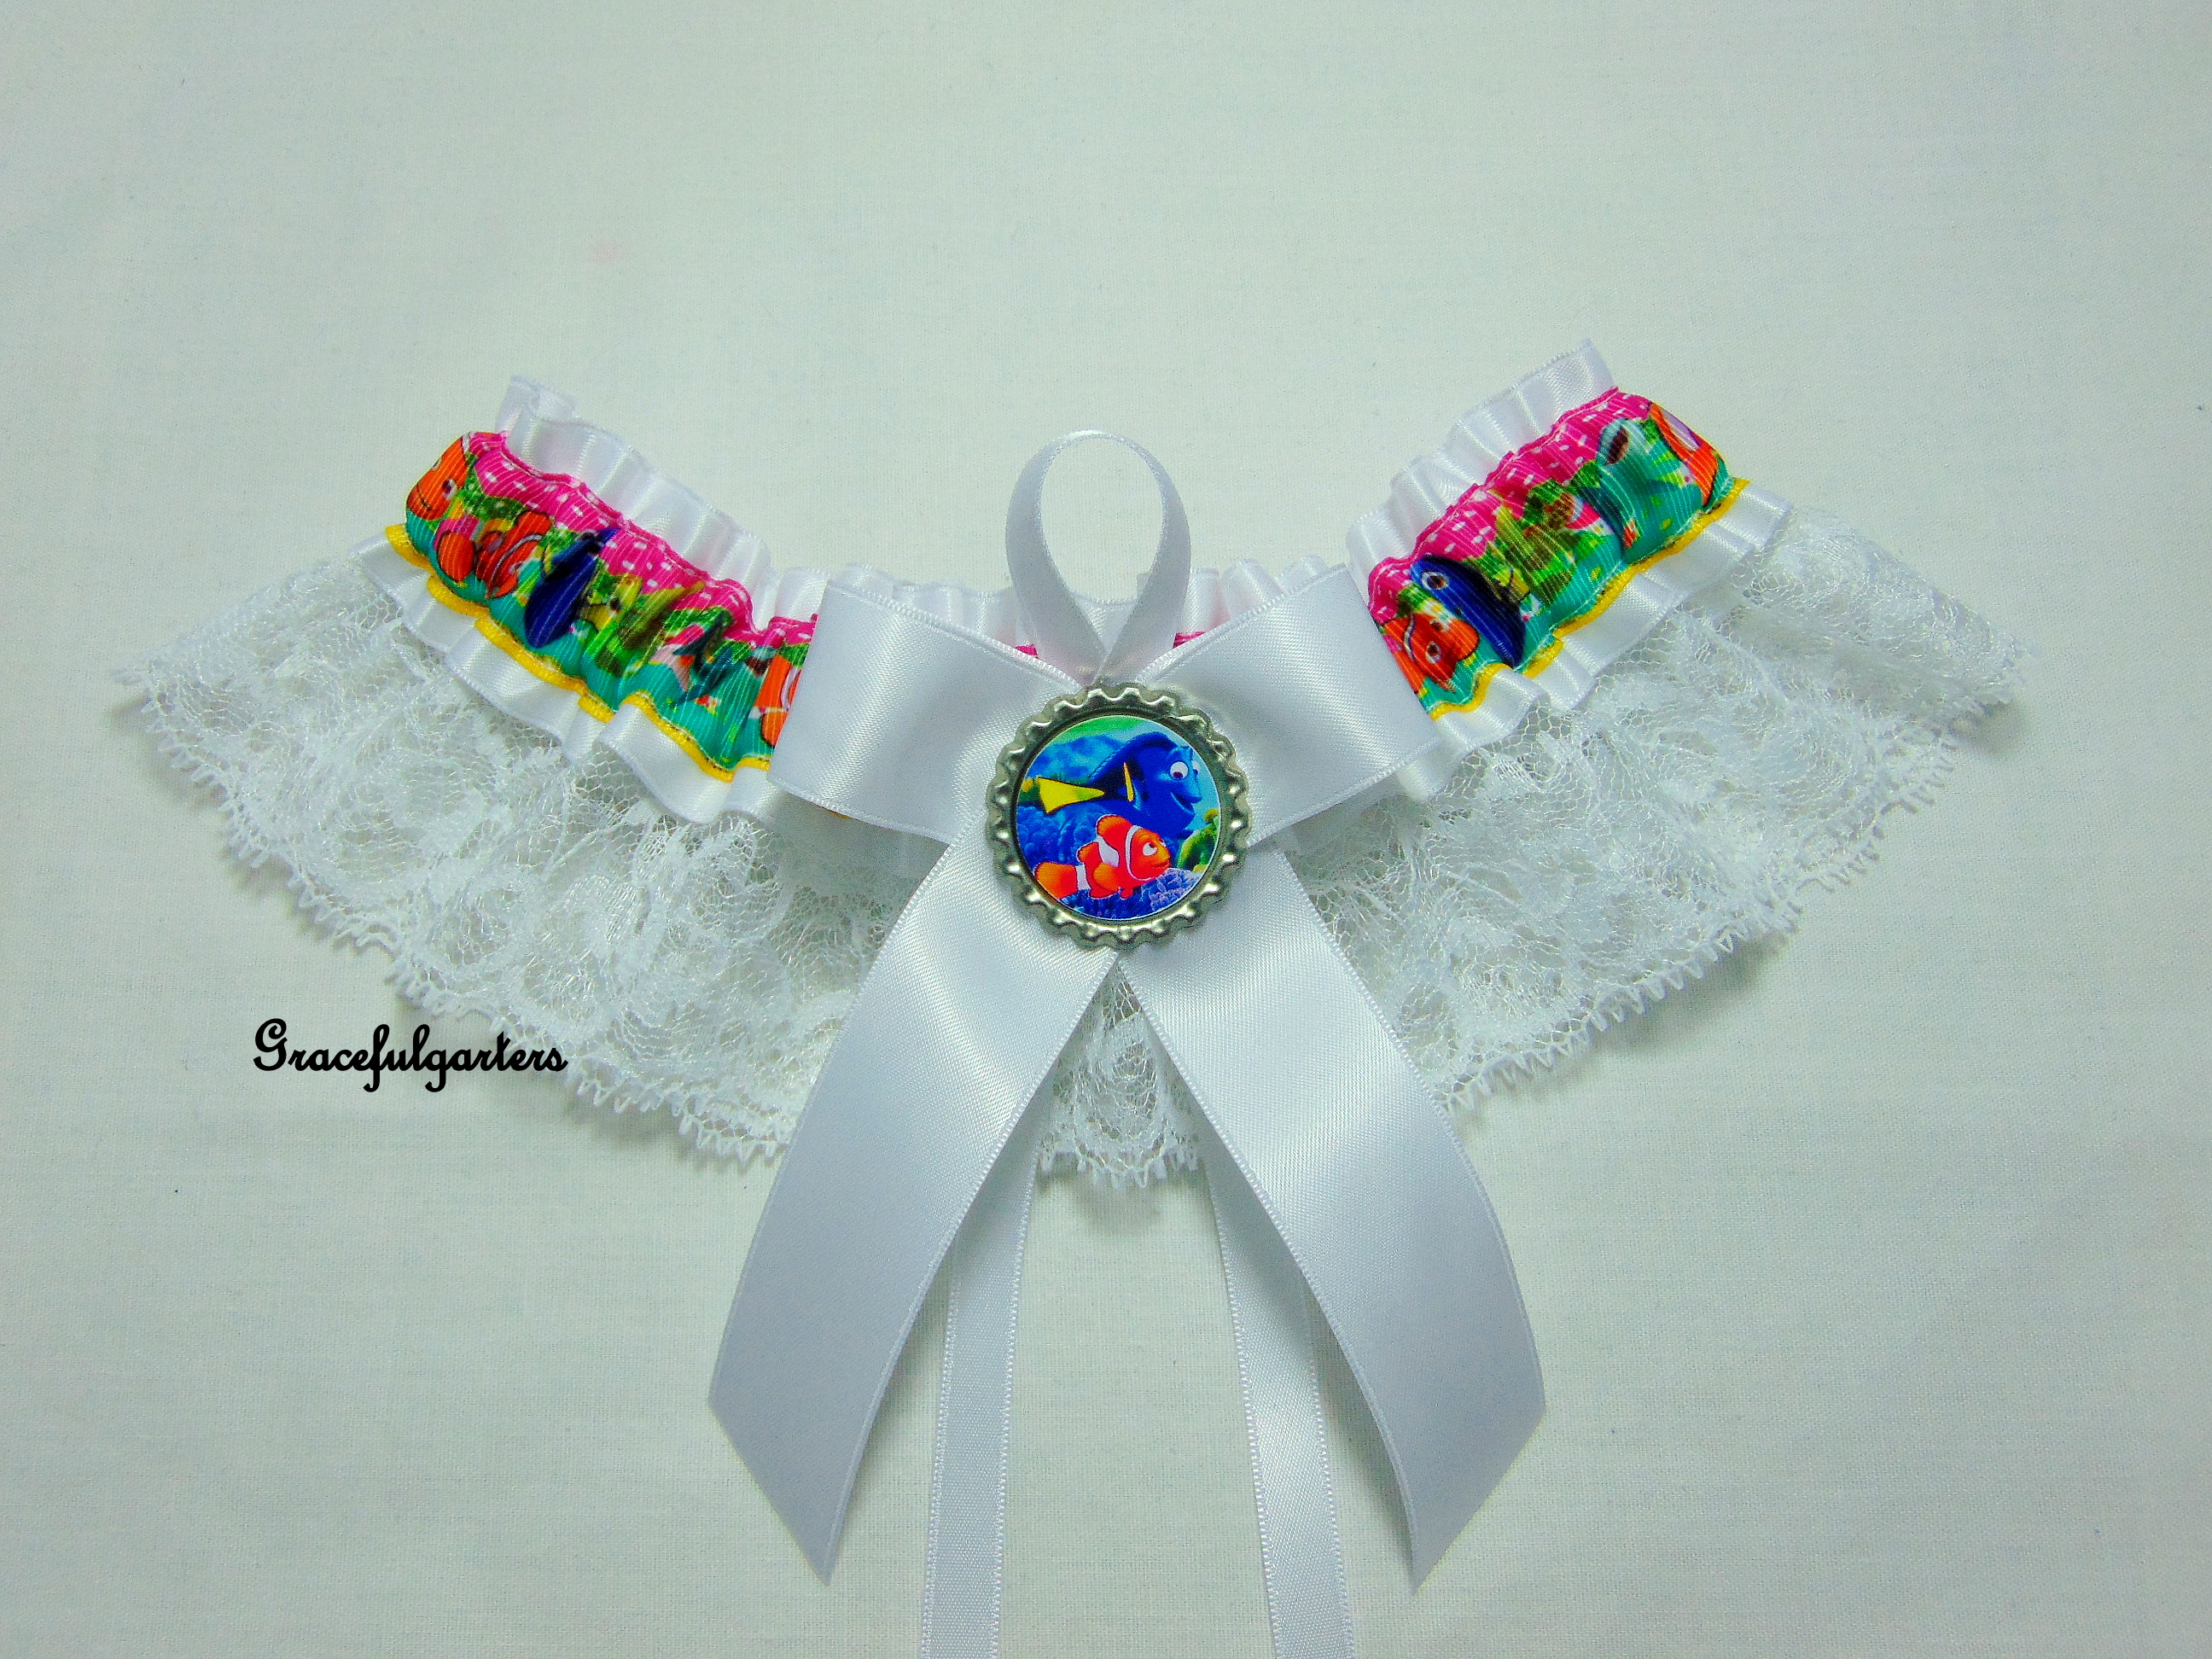 Finding Nemo And Finding Dory Lace Bridal Wedding Garter